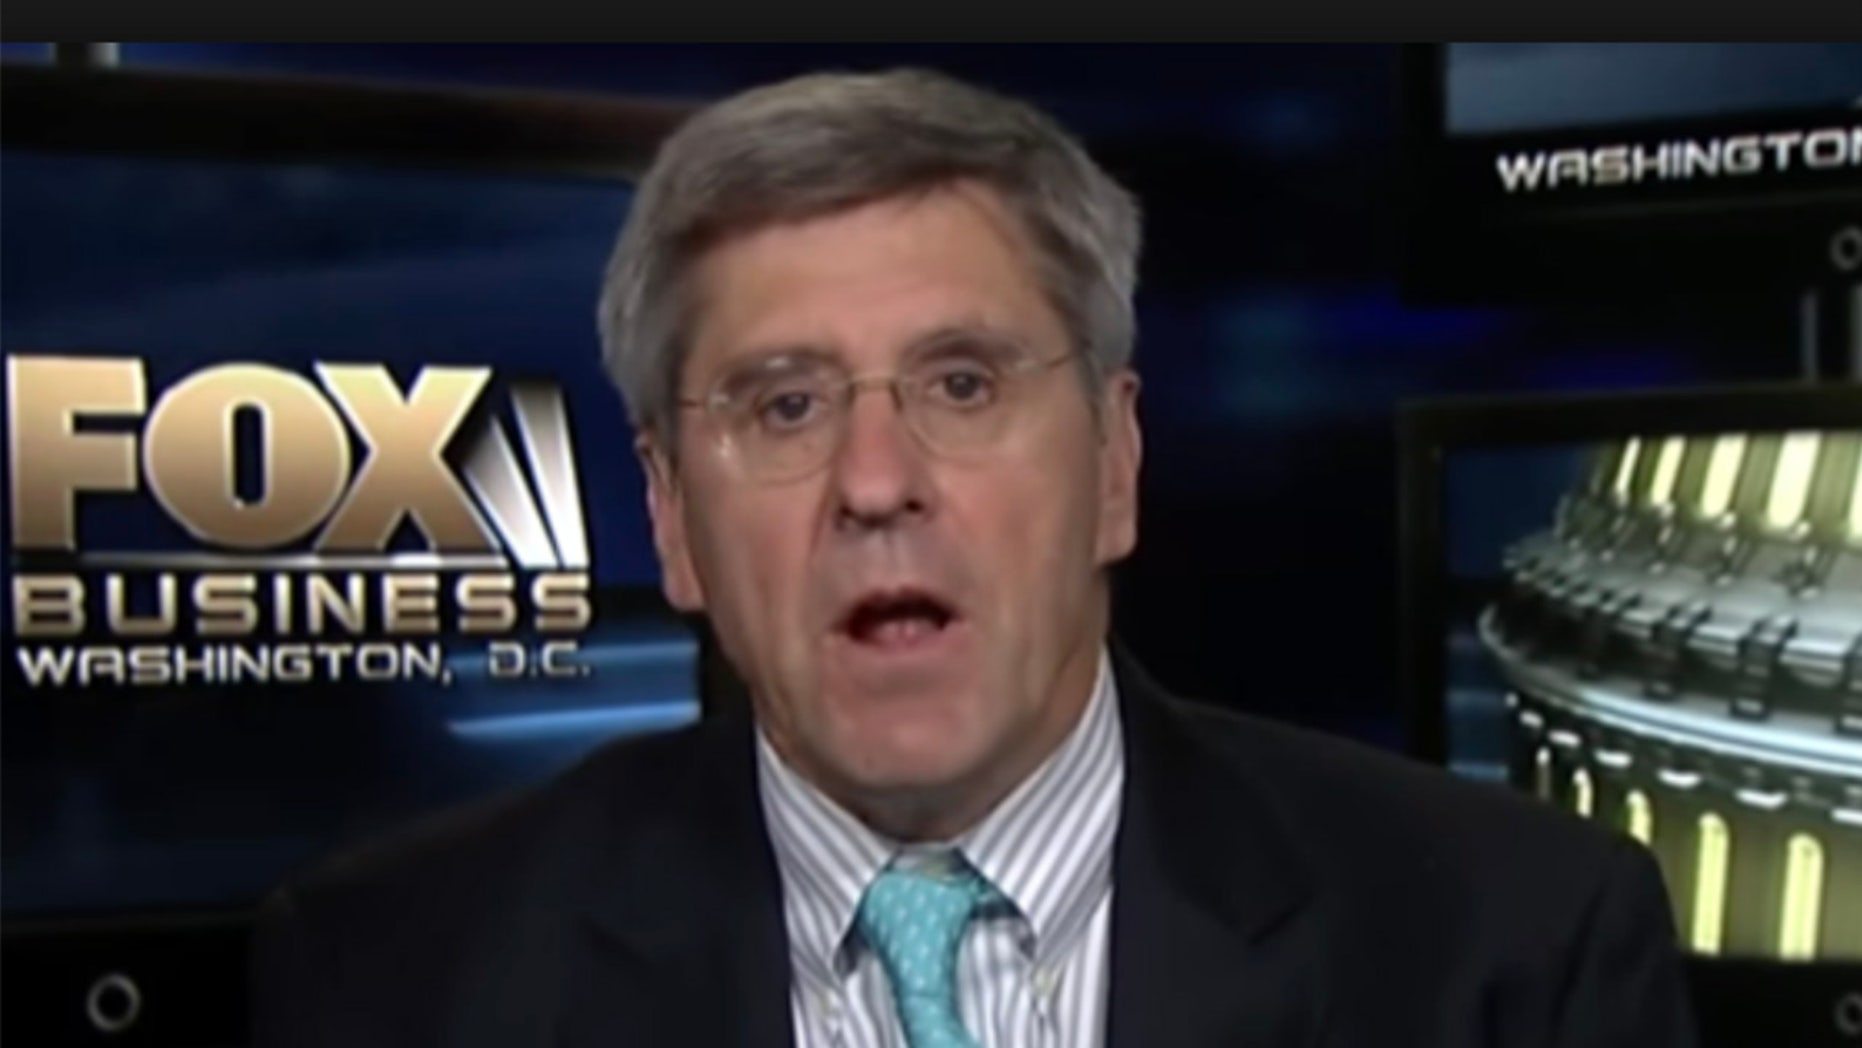 President Donald Trump said on Friday he would nominate Stephen Moore, a conservative economic analyst and often a Federal Reserve critic, to fill a vacancy on the Fed's seven-member board.